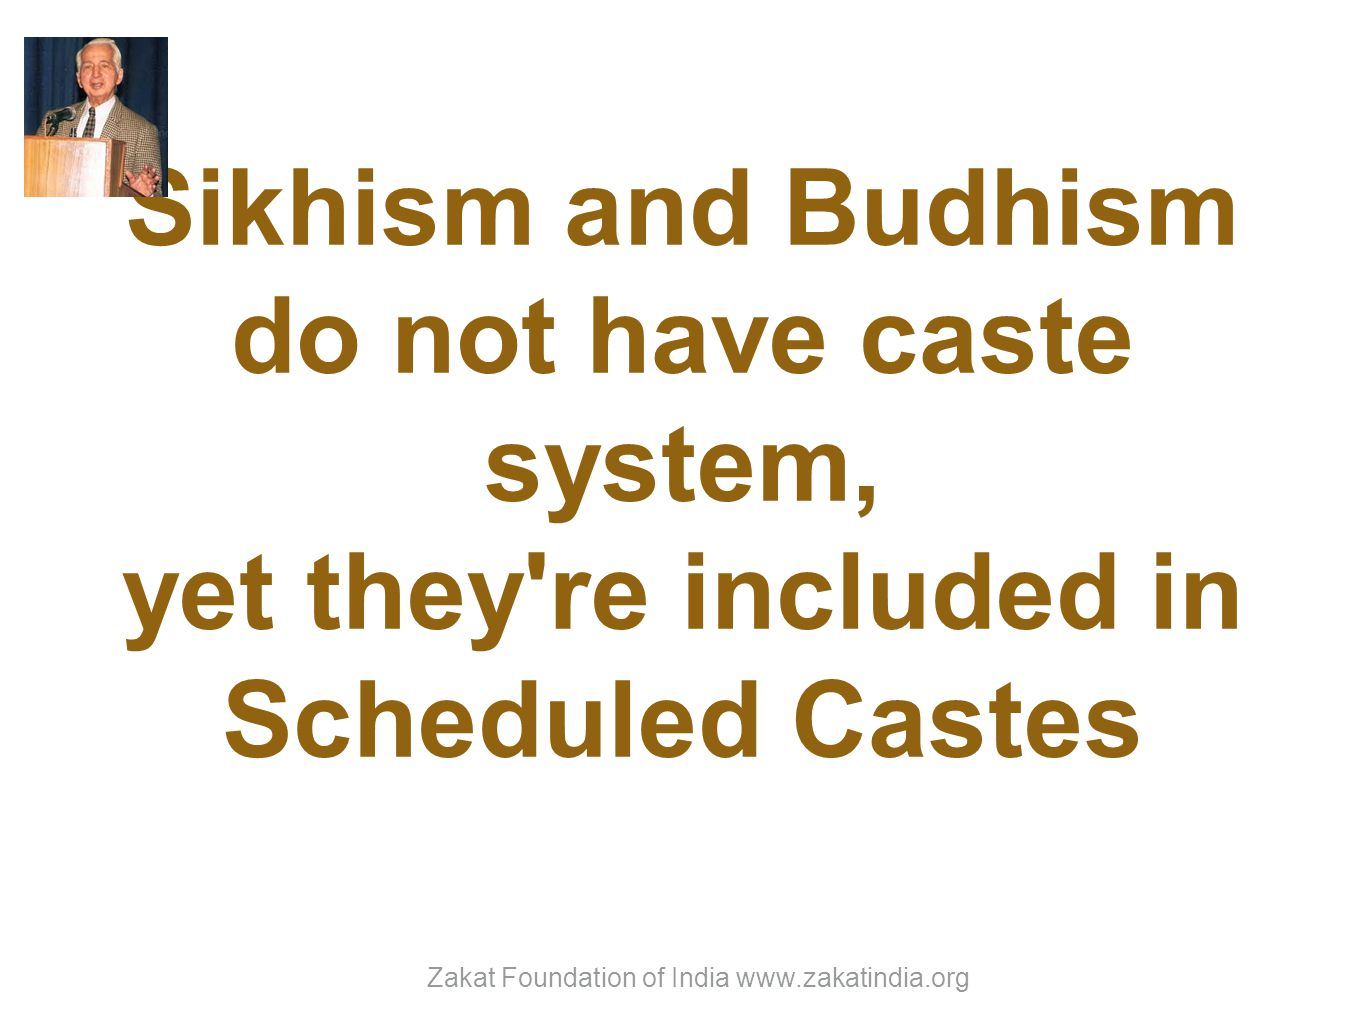 Sikhism and Budhism do not have caste system, yet they re included in Scheduled Castes Zakat Foundation of India www.zakatindia.org